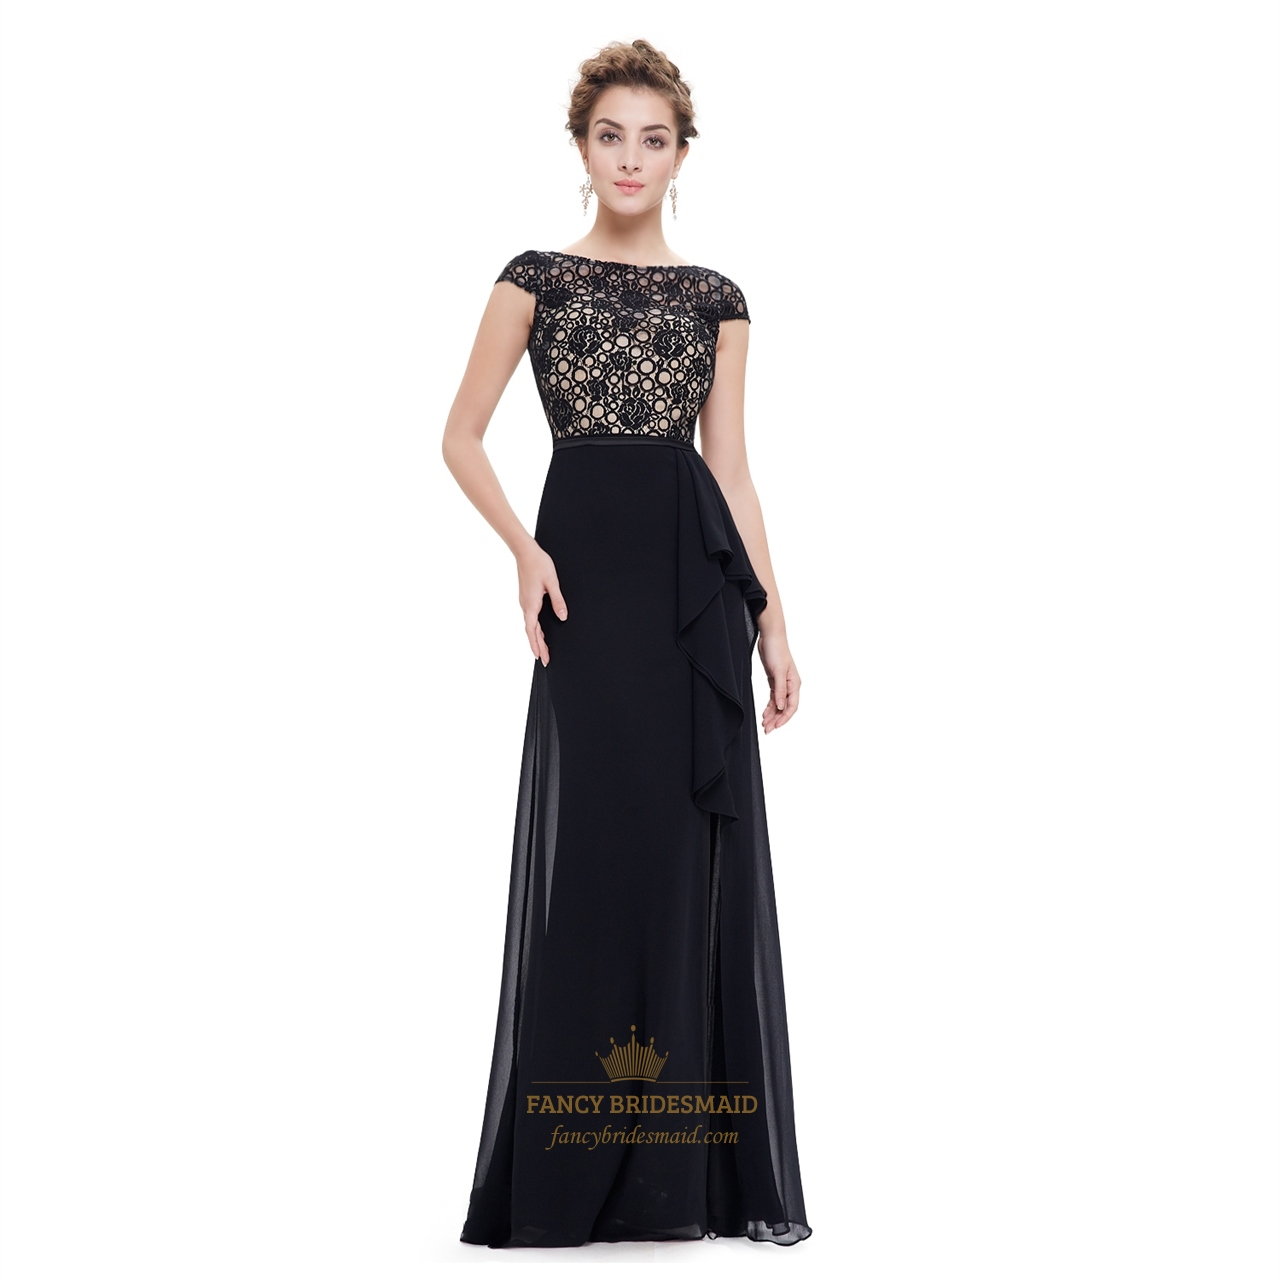 2019 year for lady- Lace black bridesmaid dresses with sleeves